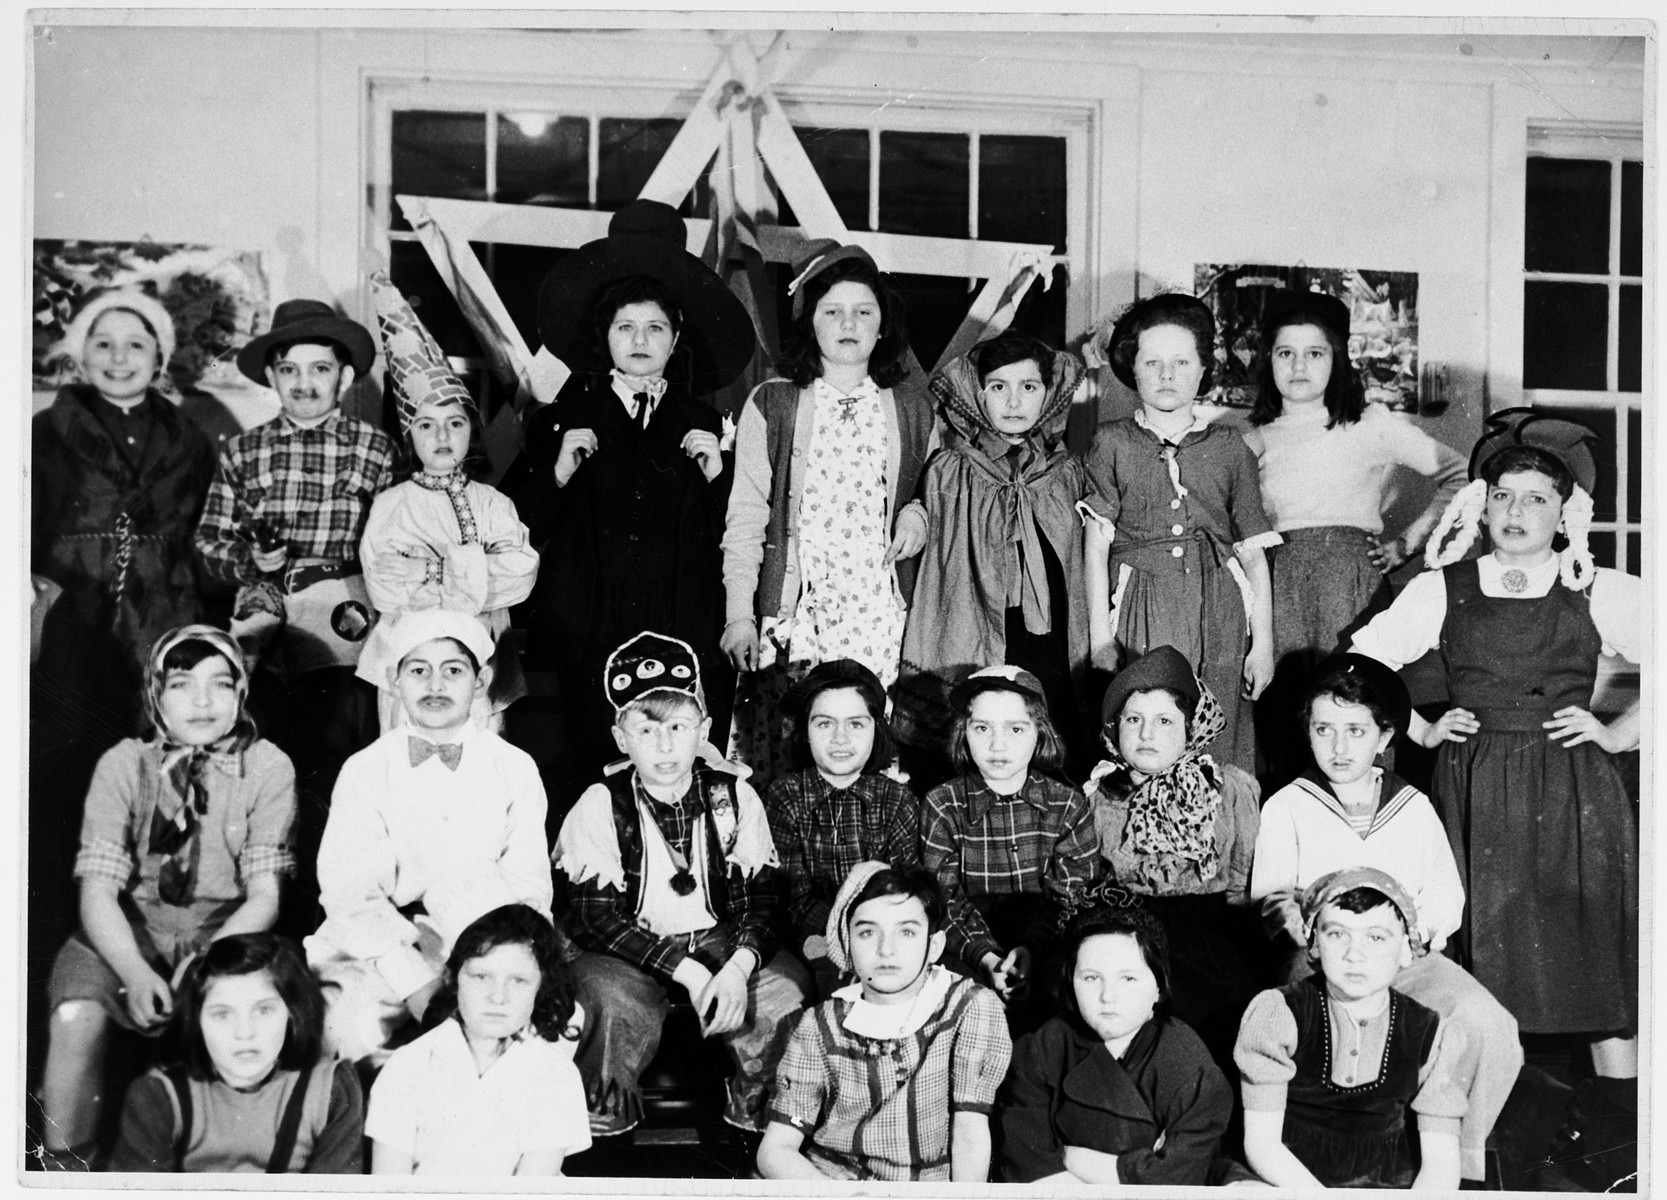 Group portrait of children dressed in Purim costumes in the Fort Ontario refugee center.  Those pictured include Ray Harding, John Hirshler, Ruth Hendel, Walter Gruenberg and Willie Kramer.